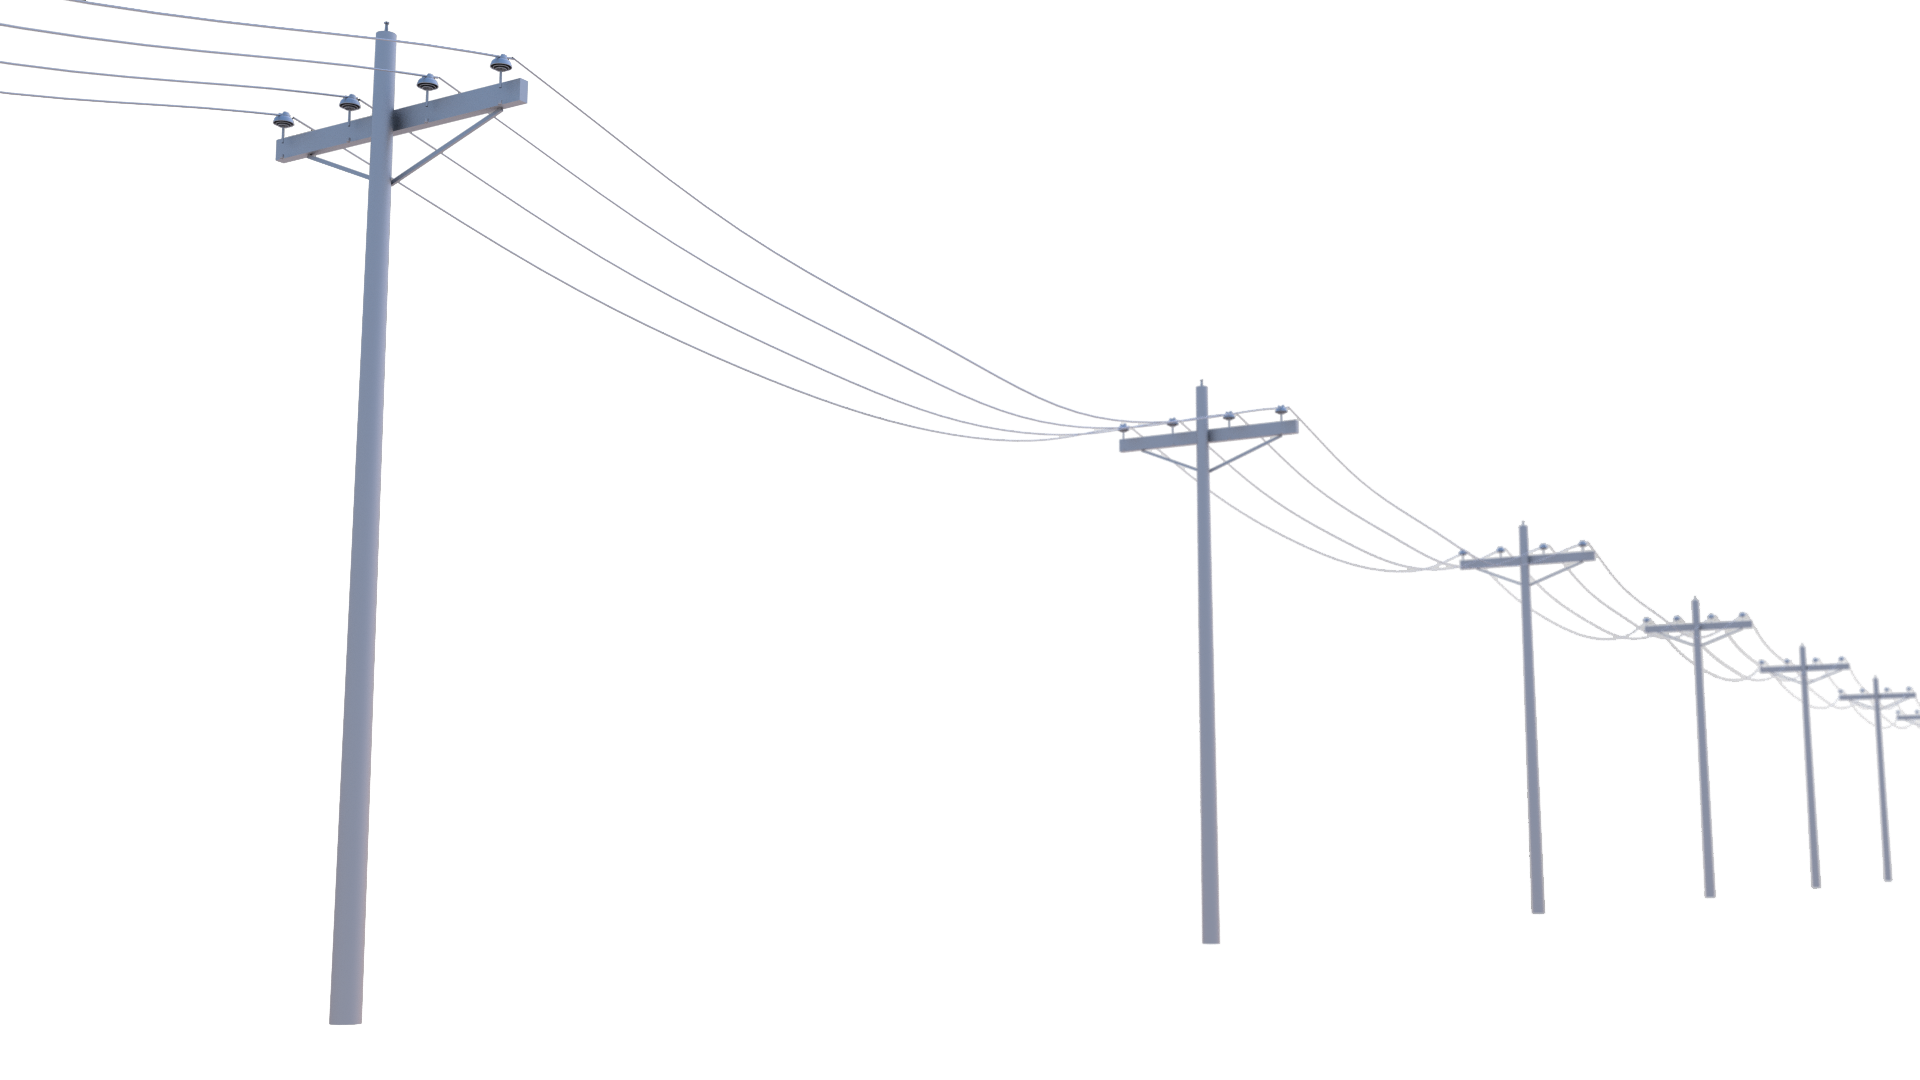 Telephone clipart poles. Electricity electric post free